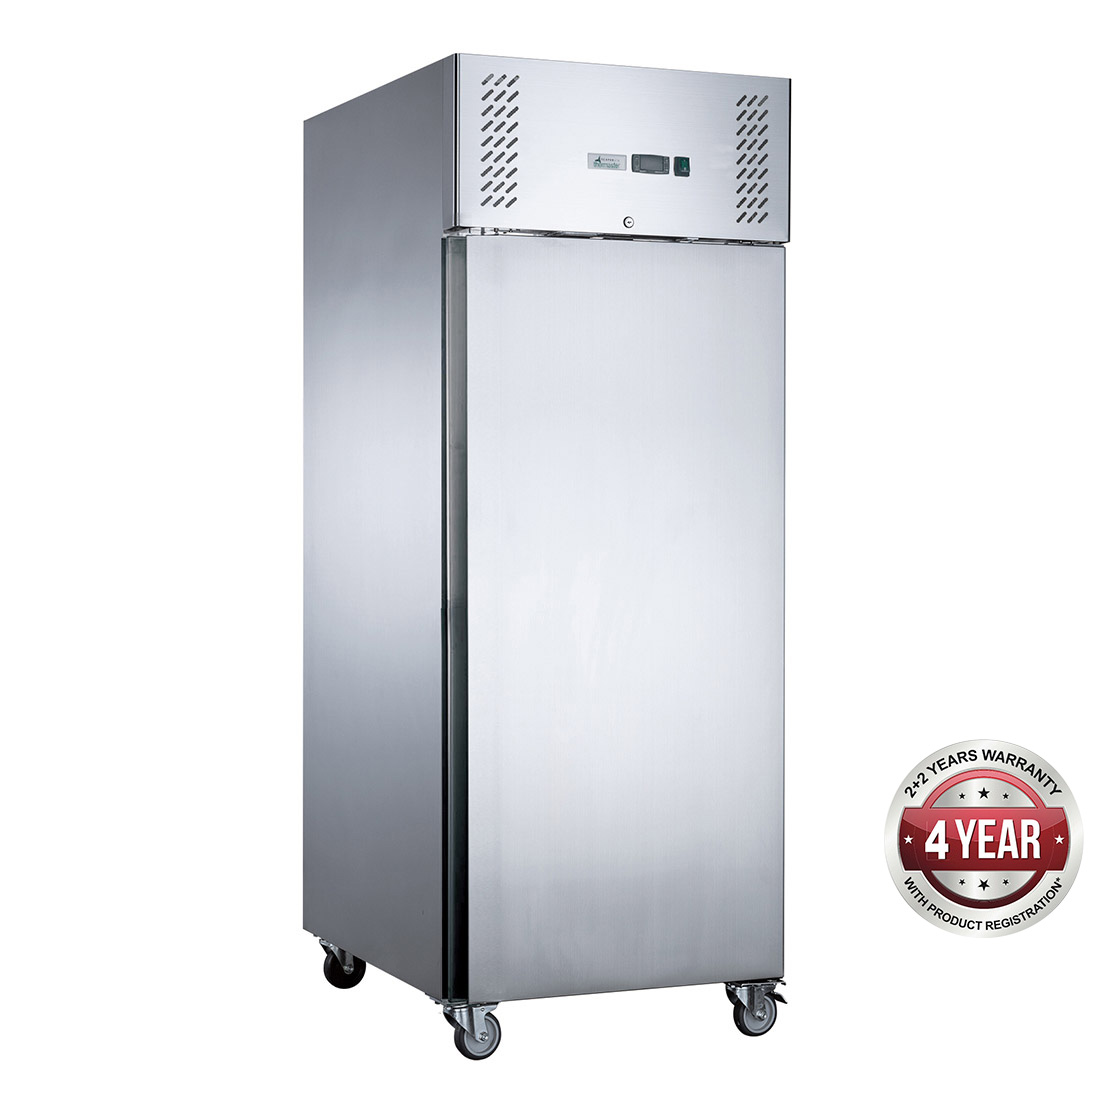 FED-X S/S Single Door Upright Freezer - XURF650SFV